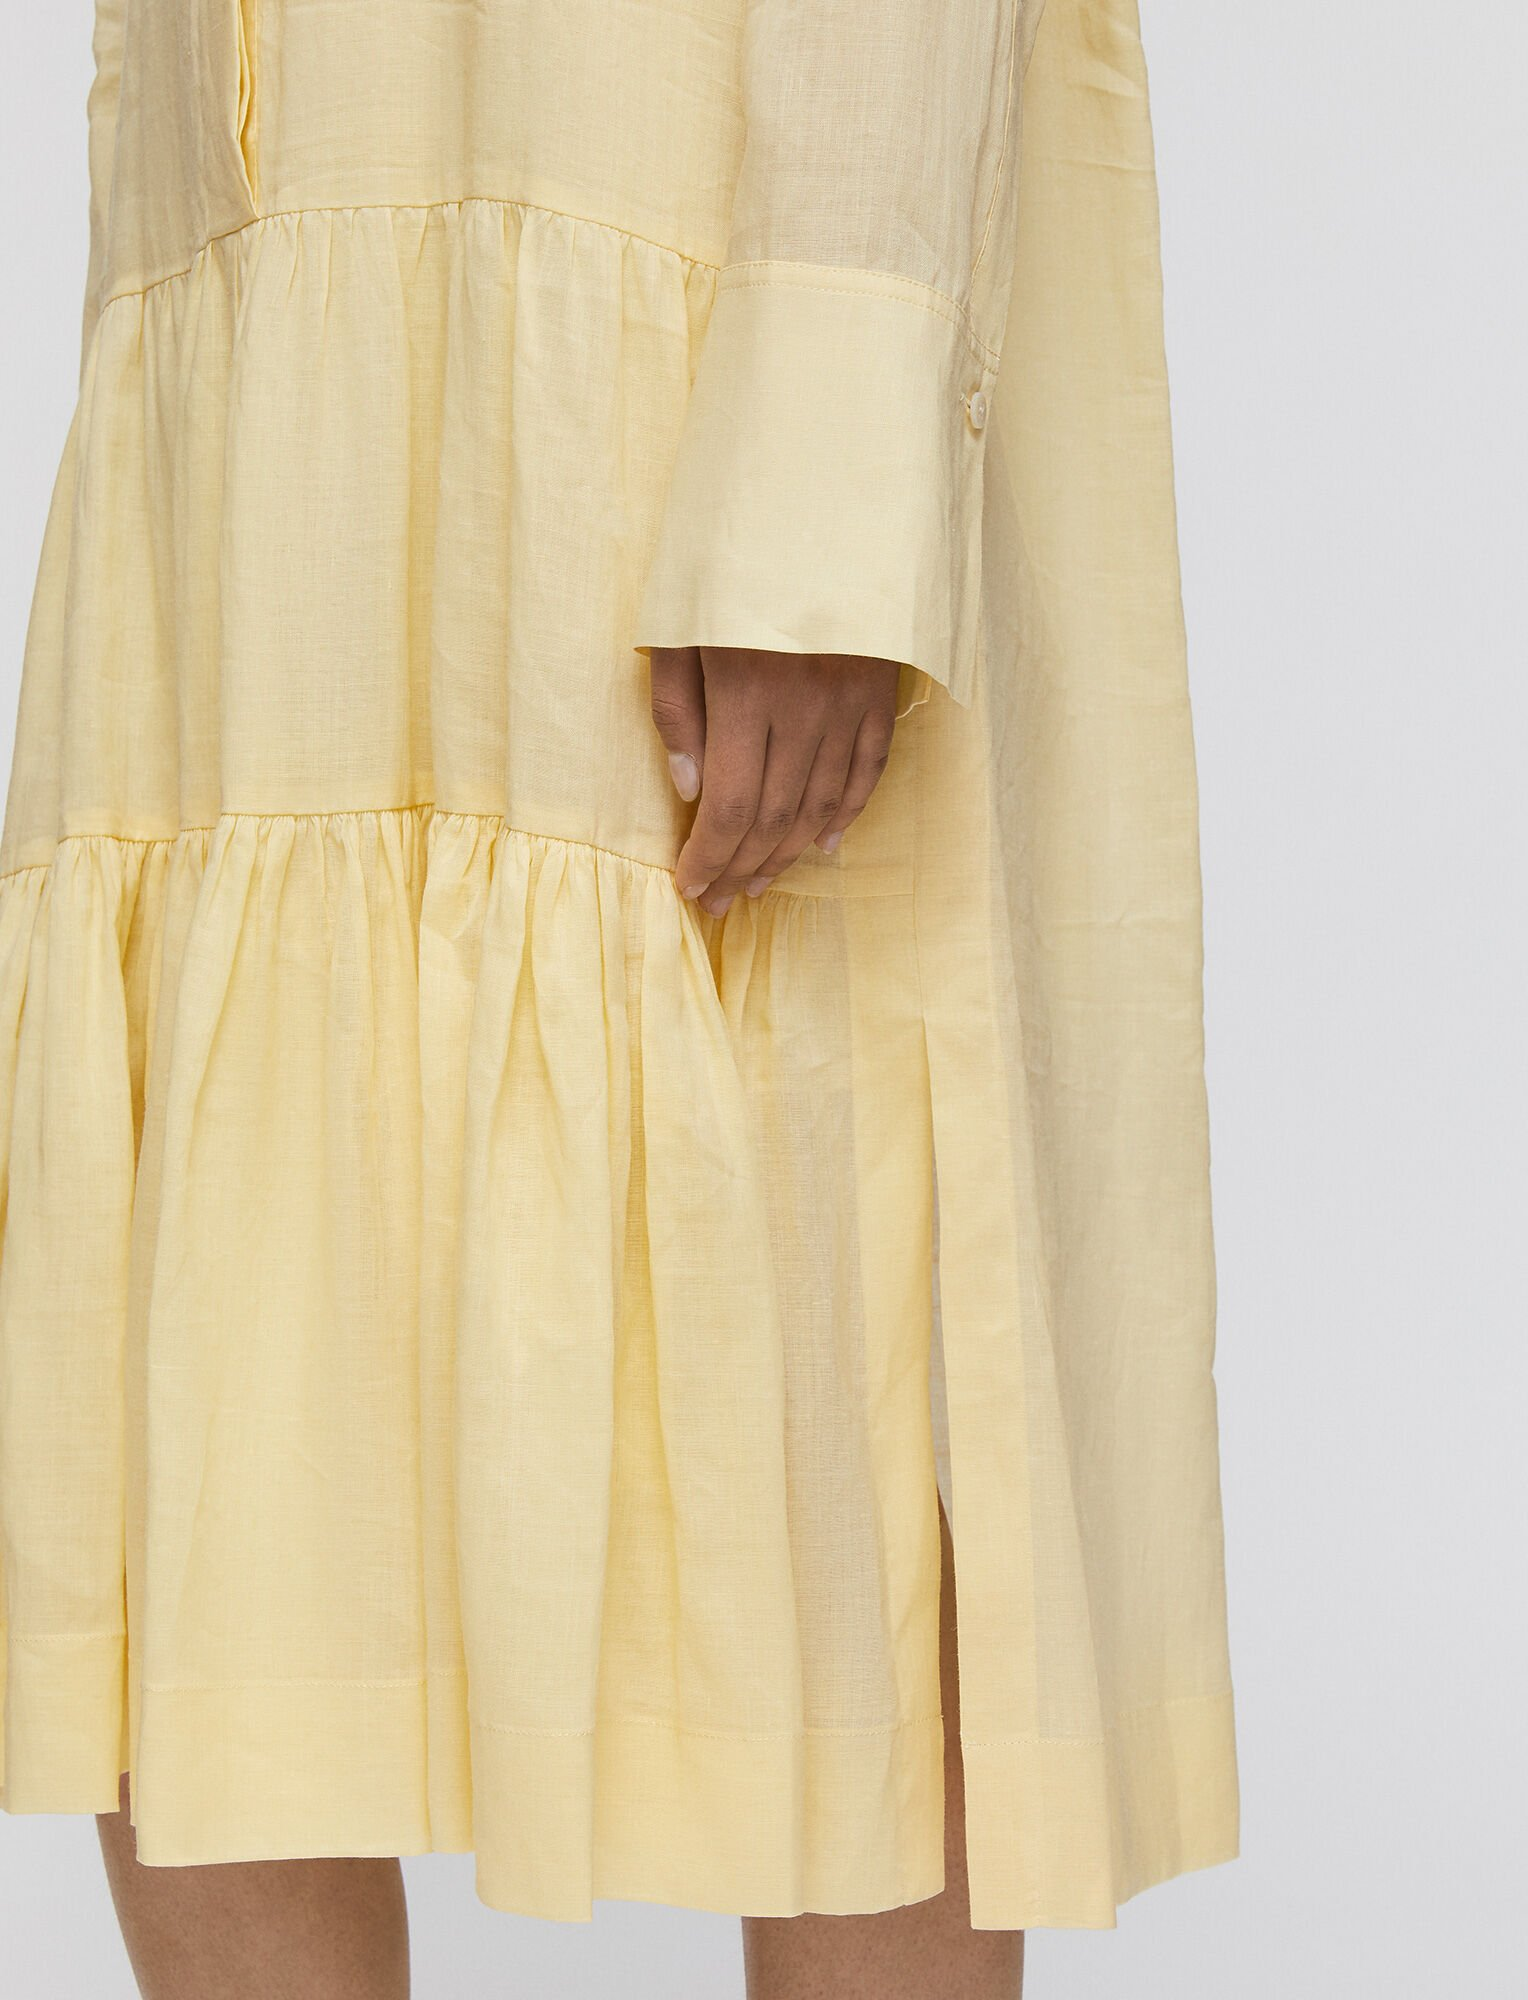 Joseph, Ramie Voile Dan Dress, in CUSTARD